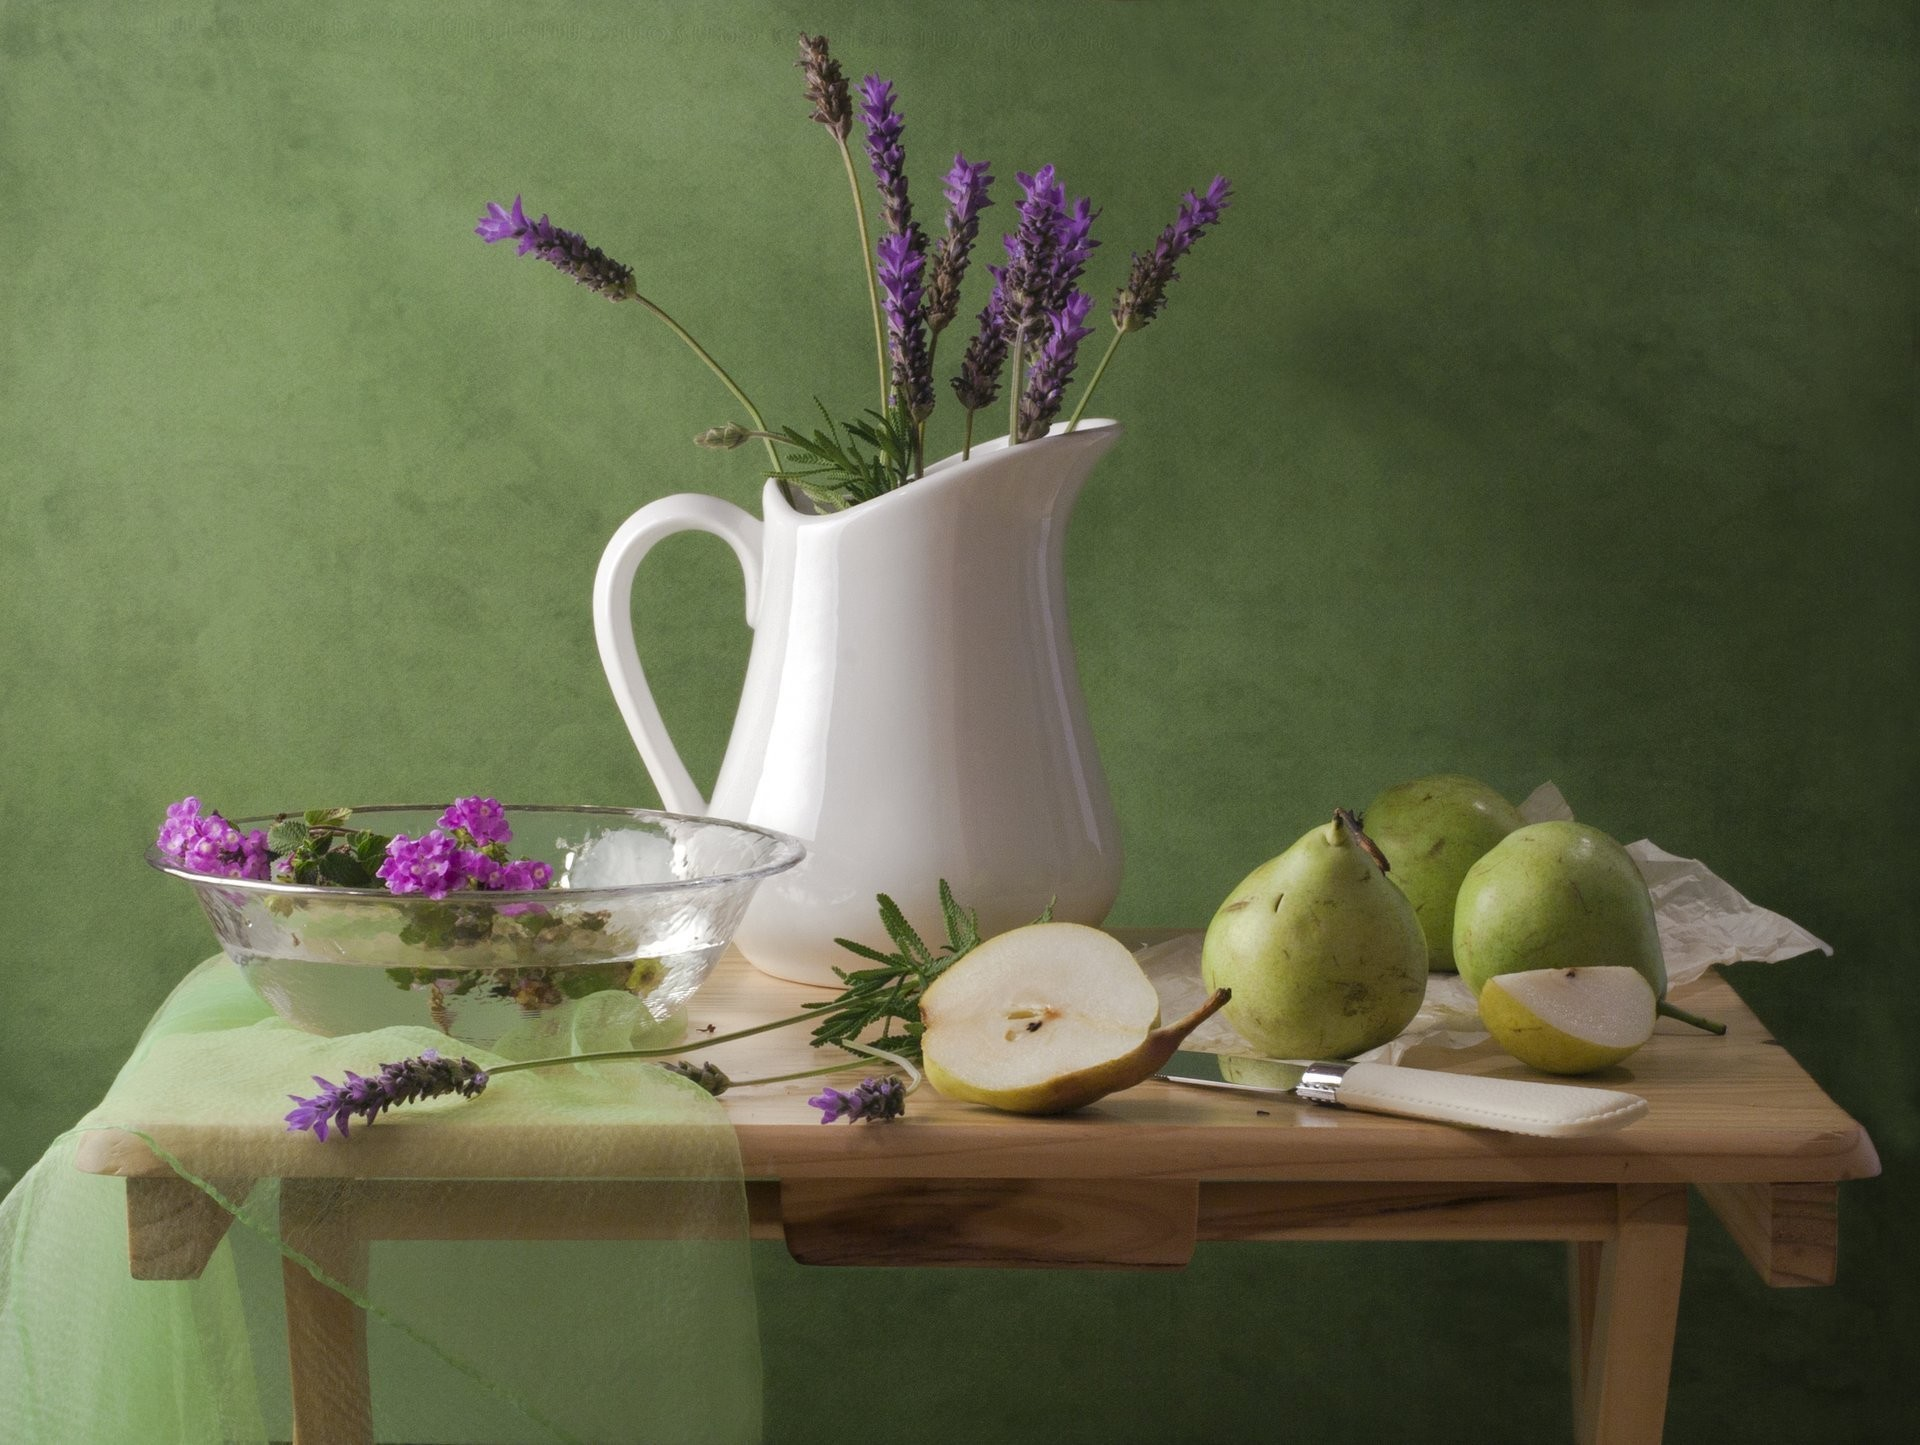 1920x1445 still life pitcher flower lavender pear knife table